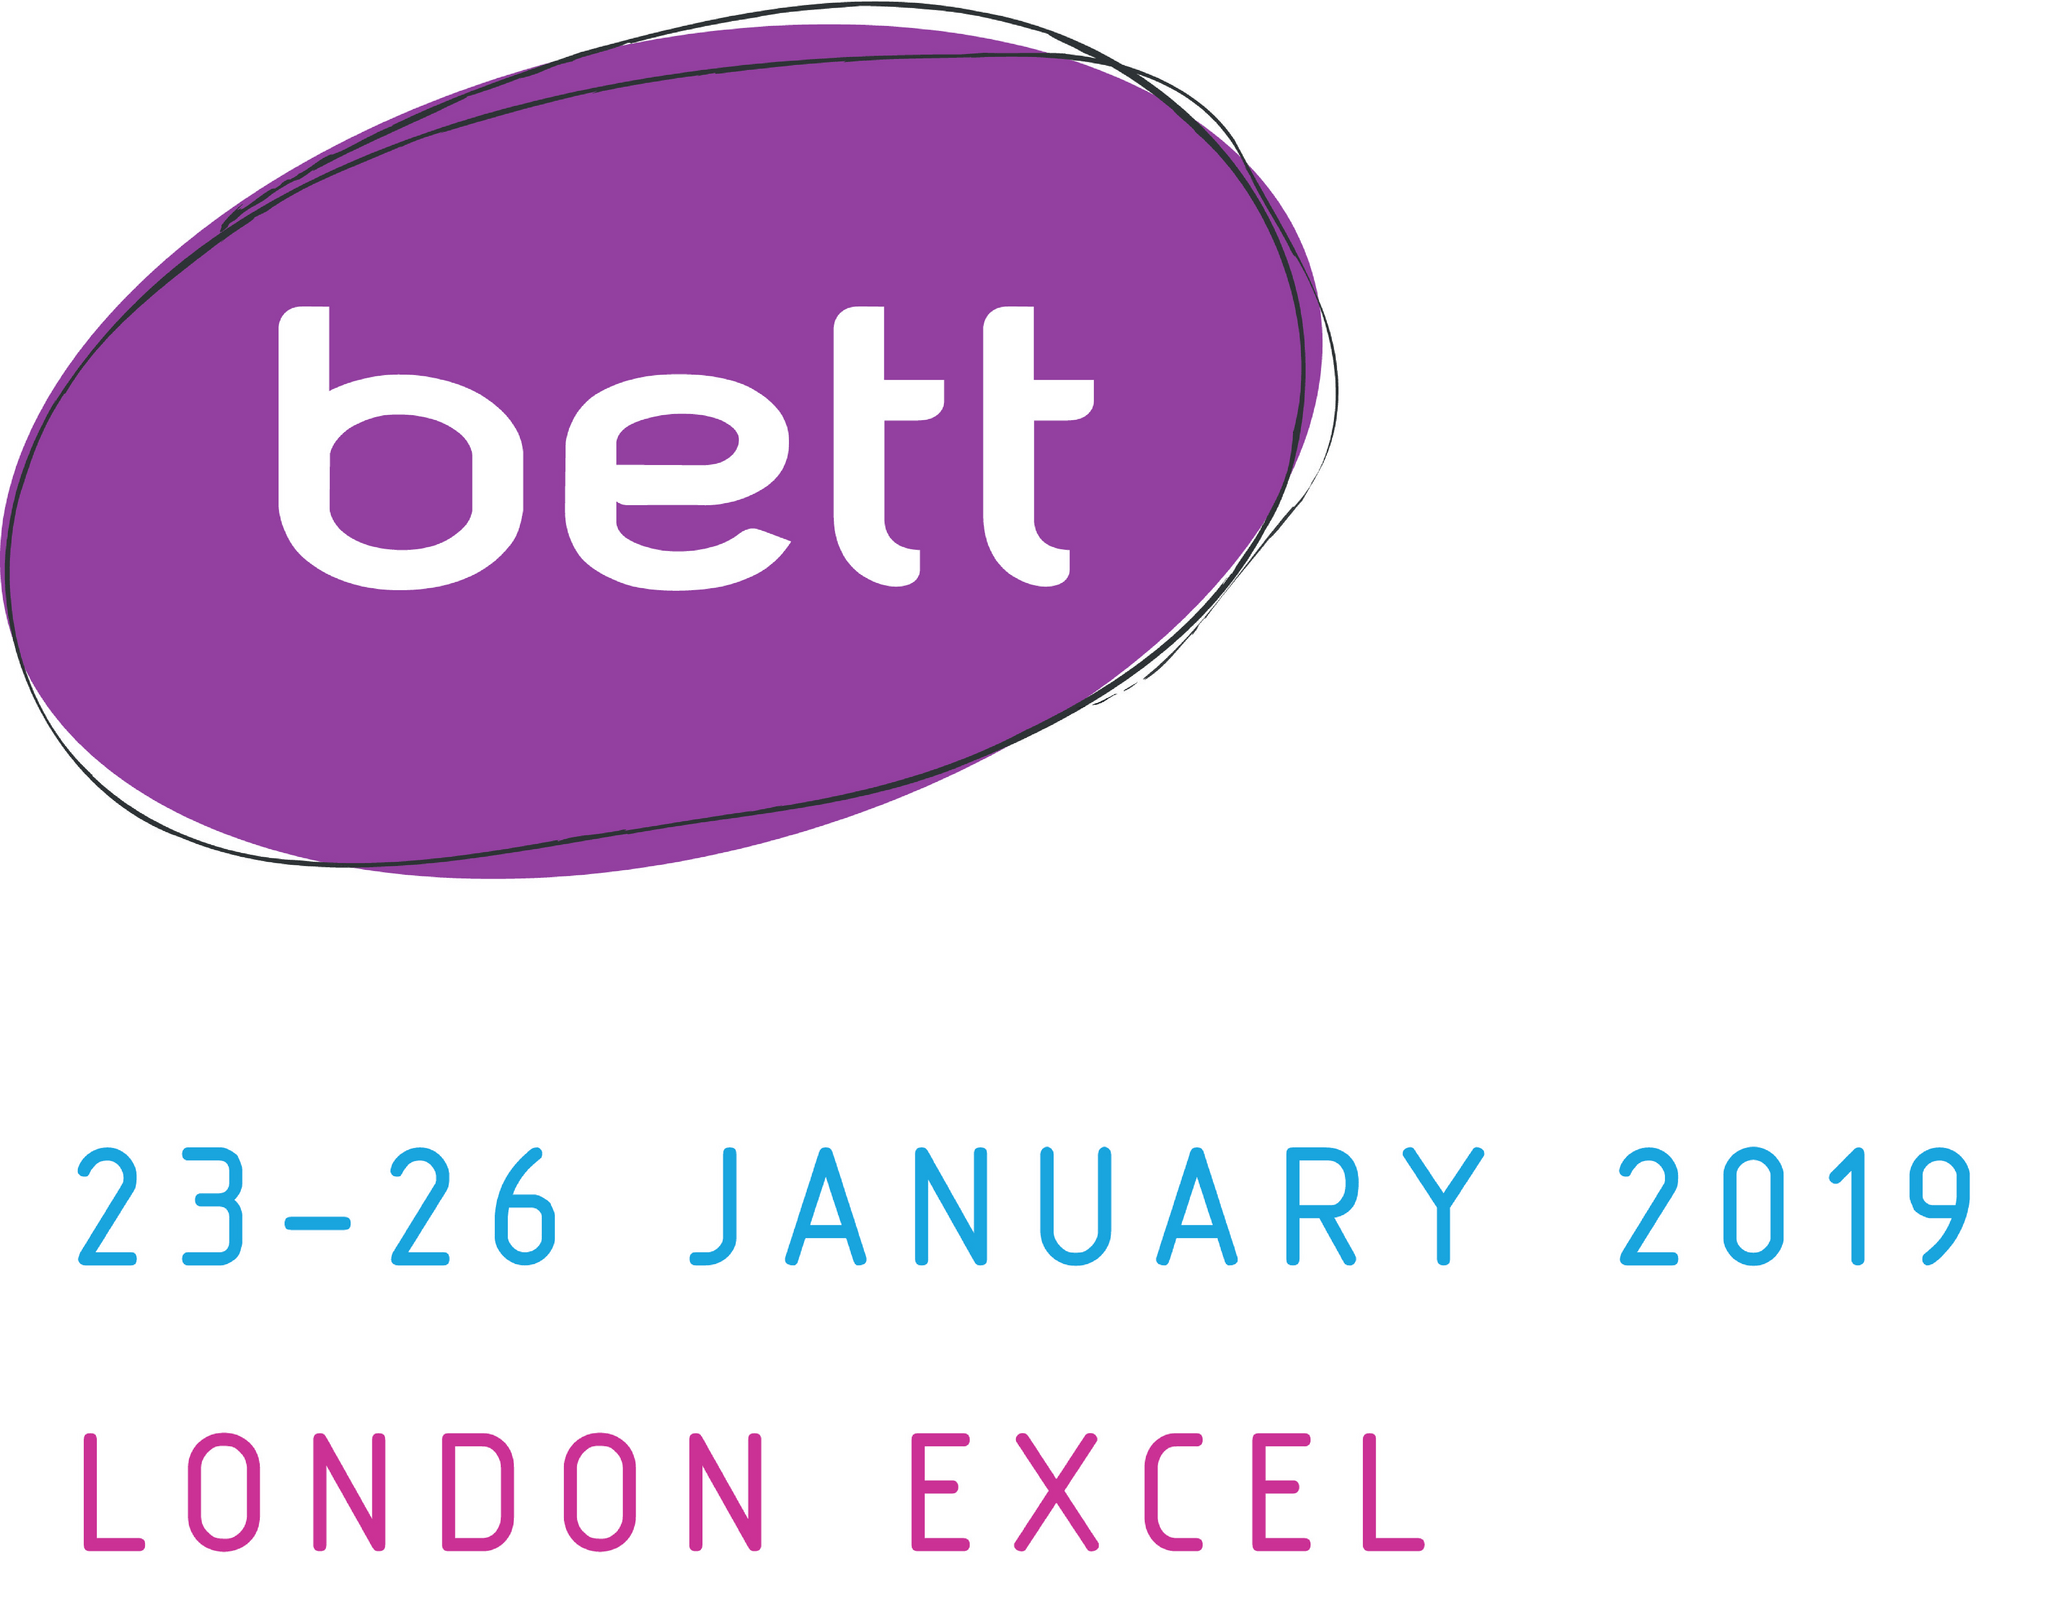 Meet the LiteracyPlanet team at Bett 2019 at ExCeL London conference centre, among 850 of the world's premier EdTech companies.